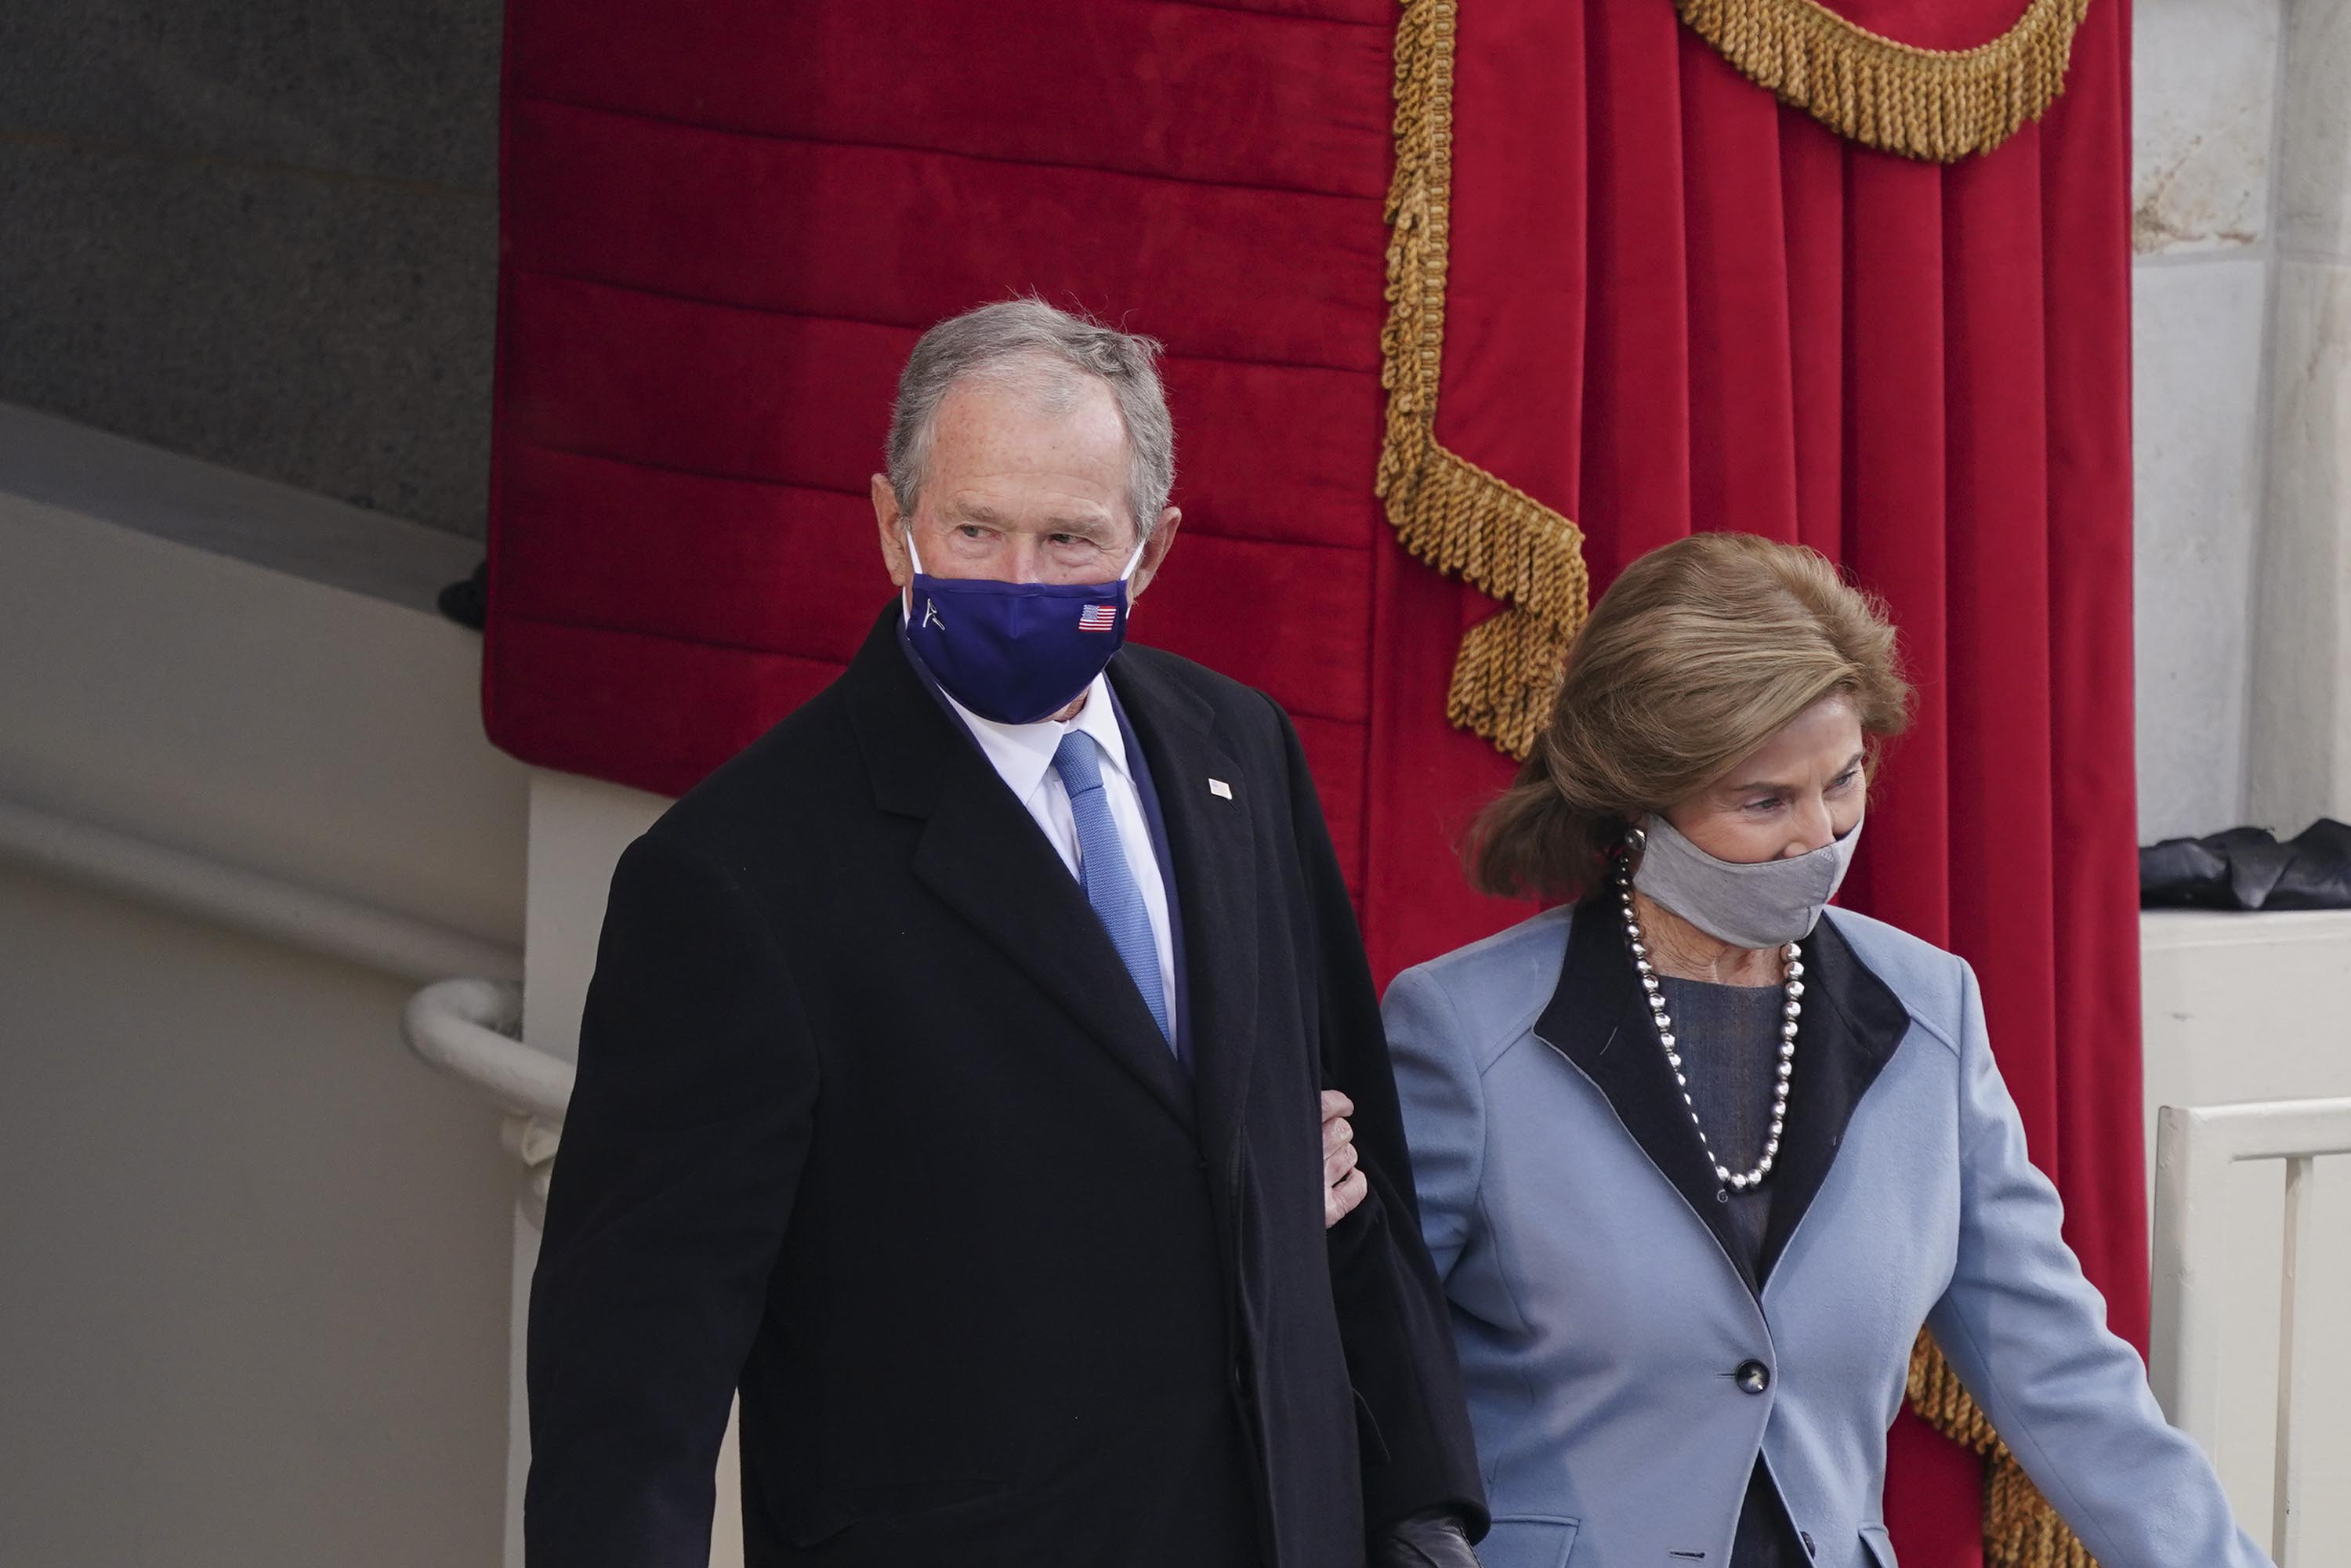 Bush describes GOP as 'isolationist, protectionist and, to a certain extent, nativist'